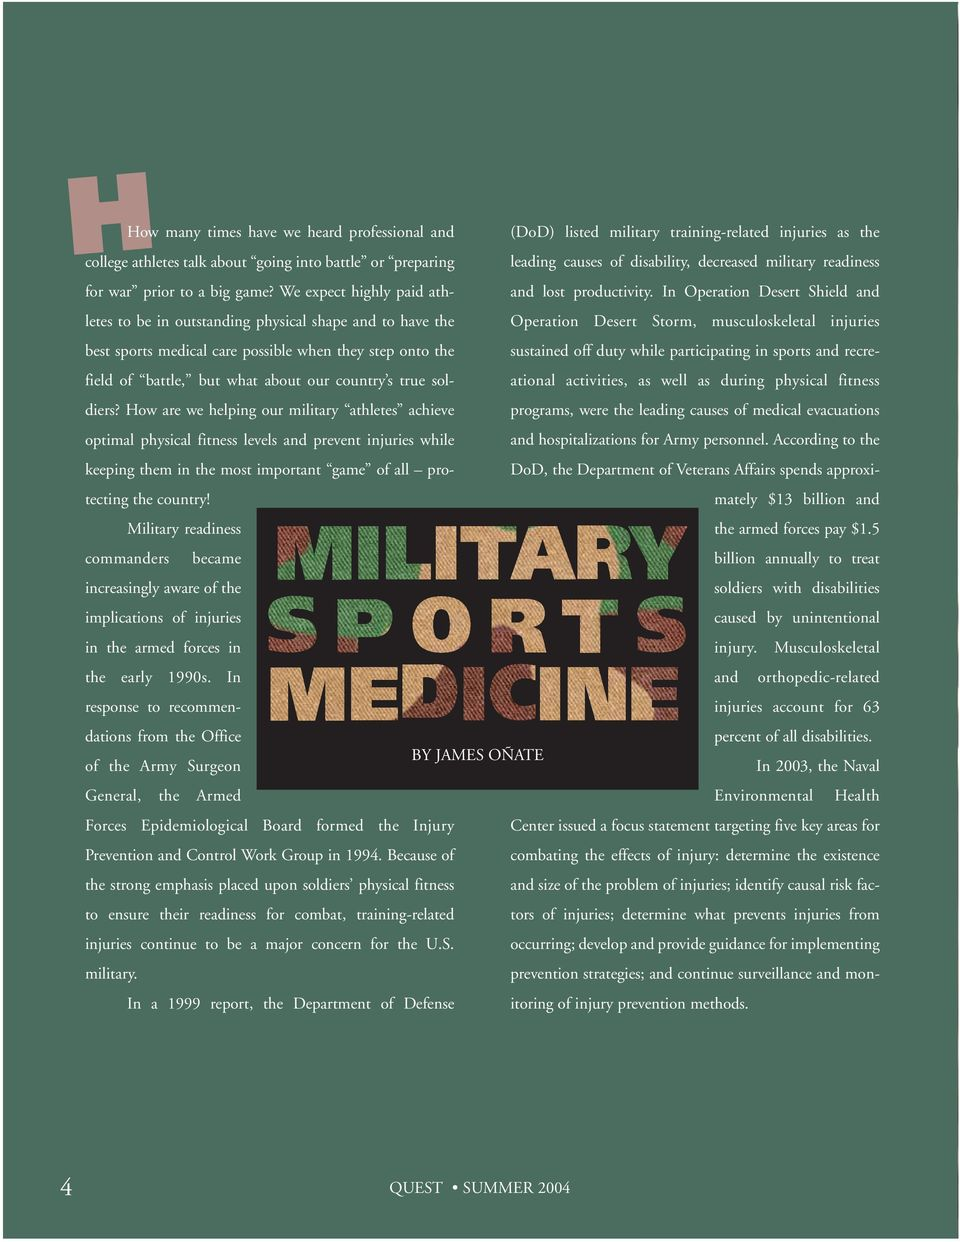 soldiers? How are we helping our military athletes achieve optimal physical fitness levels and prevent injuries while keeping them in the most important game of all protecting the country!